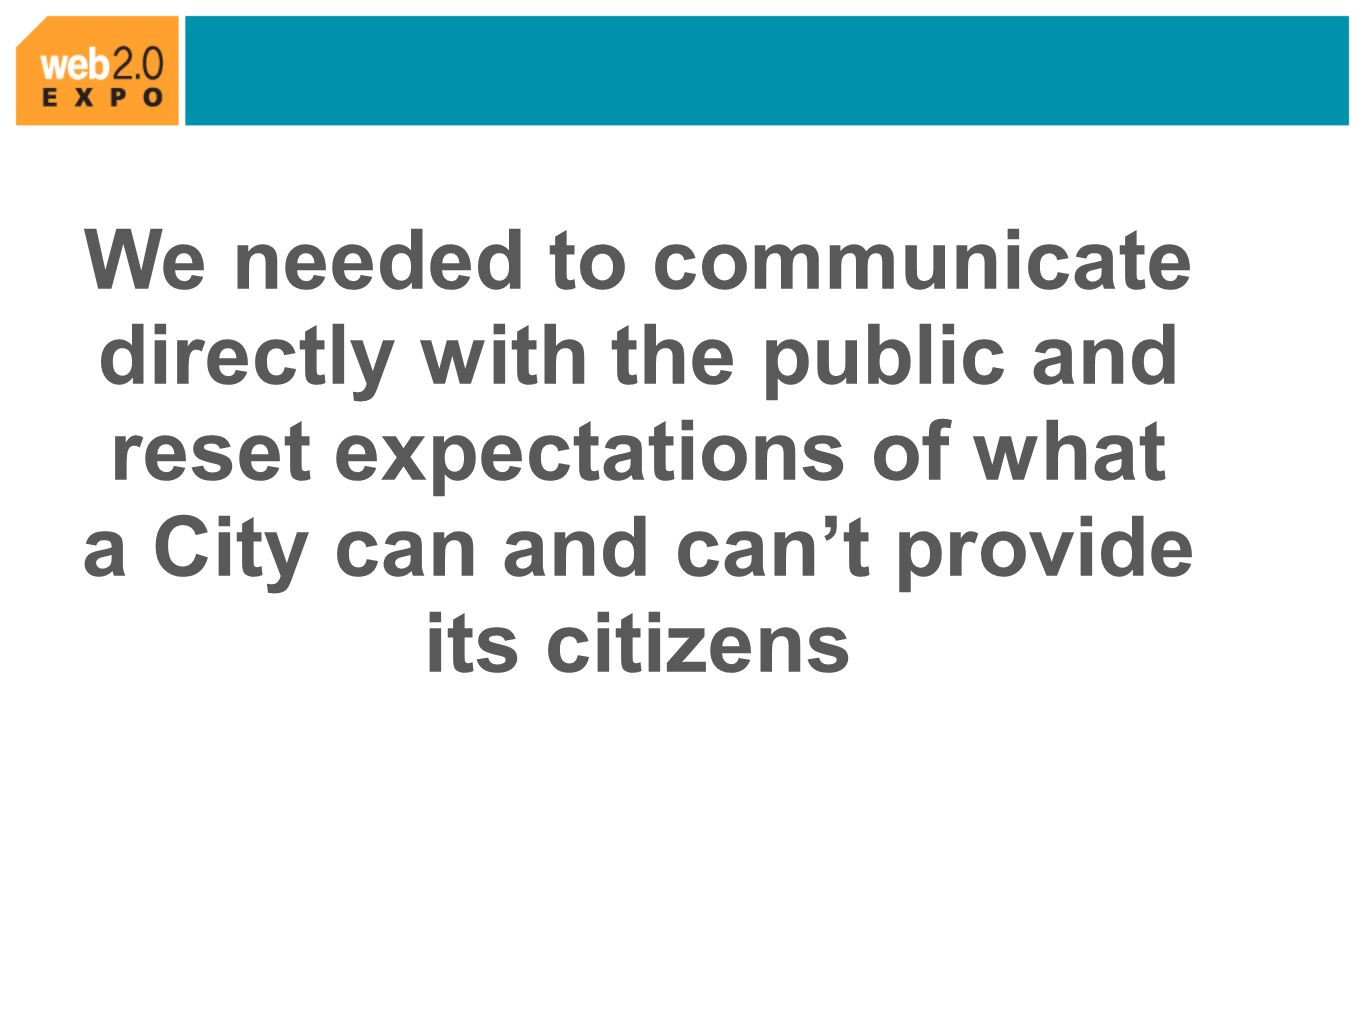 We needed to communicate directly with the public and reset expectations of what a City can and cant provide its citizens